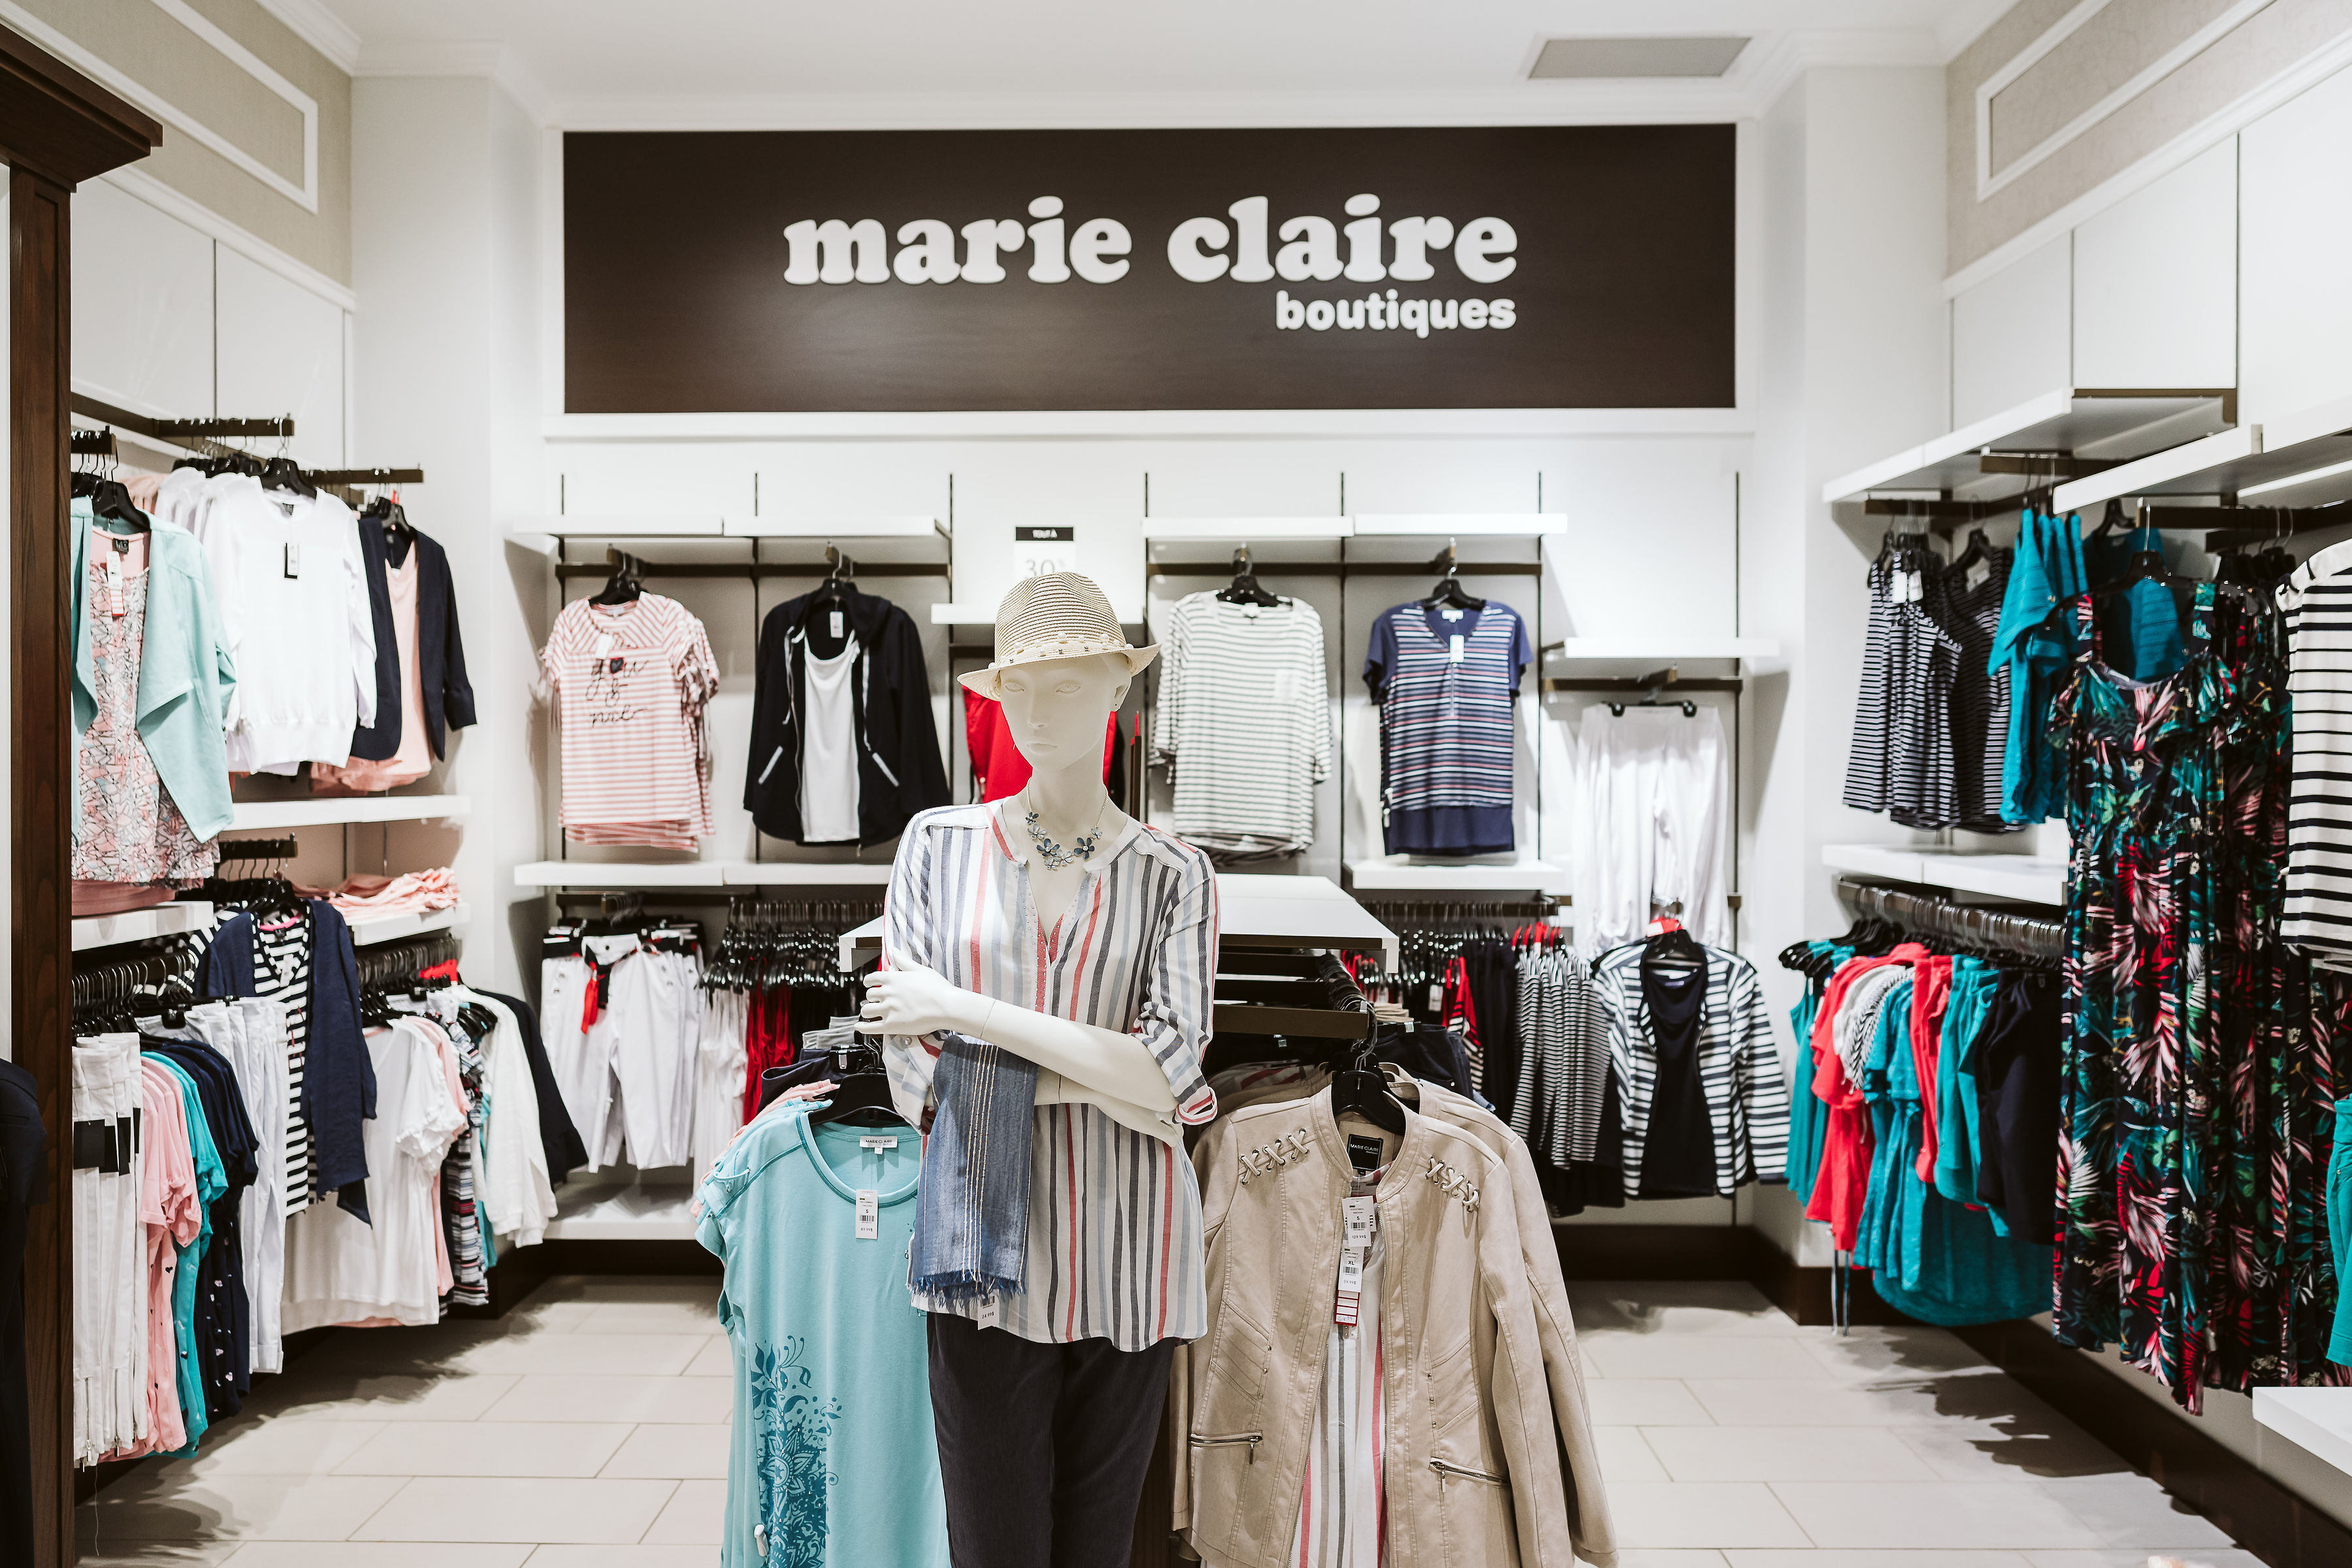 Marie Claire - Mail Champlain